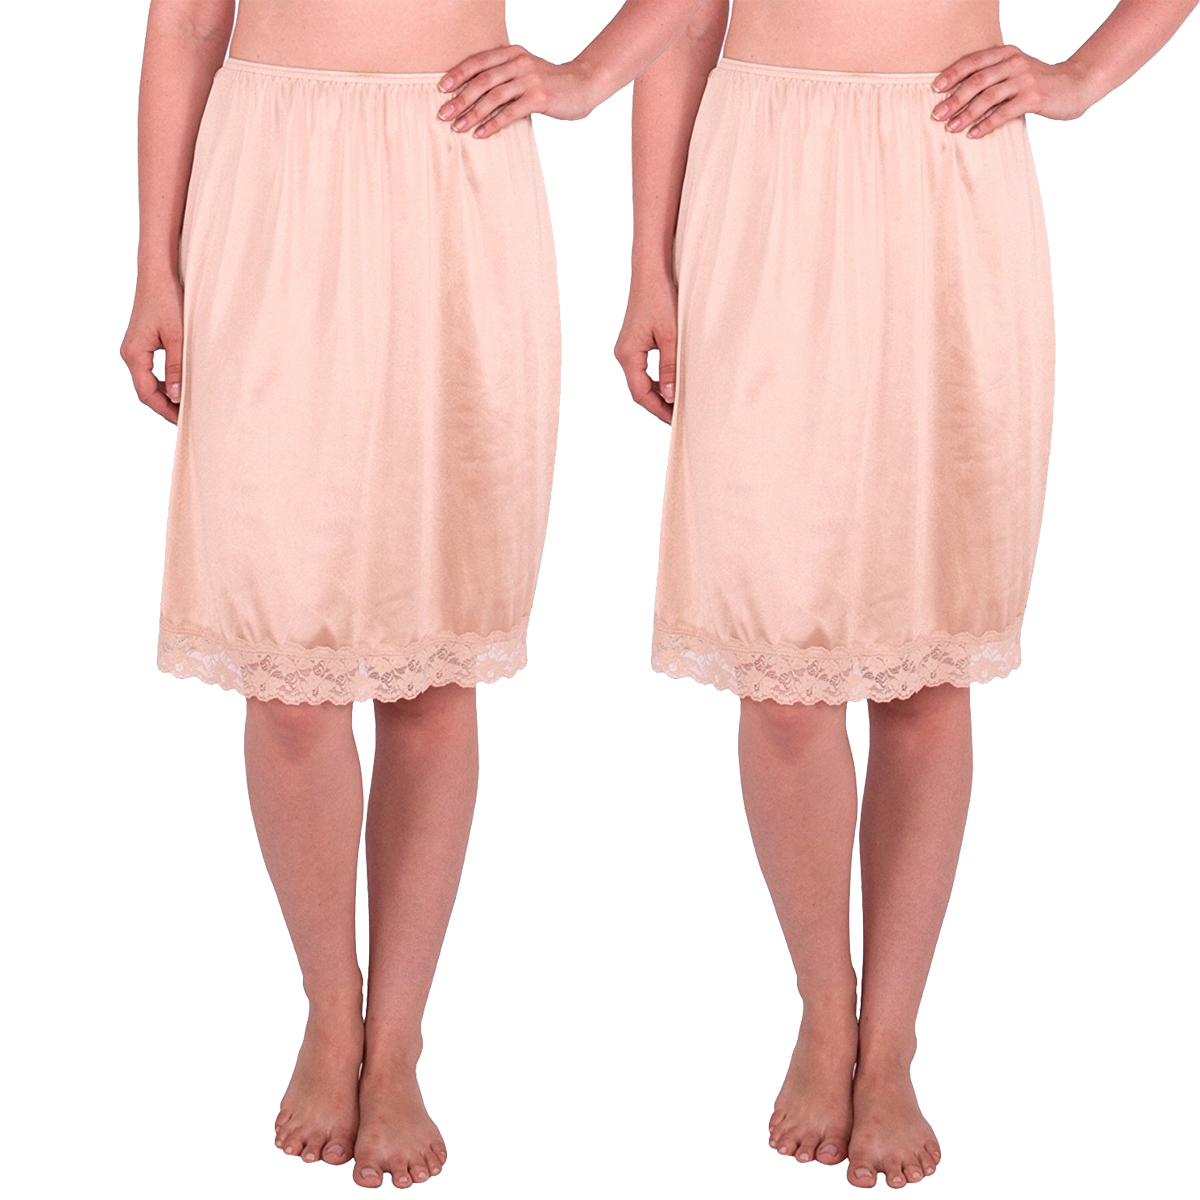 Women's Half Slip with Lace Details, Anti- Static (Pack of 2)